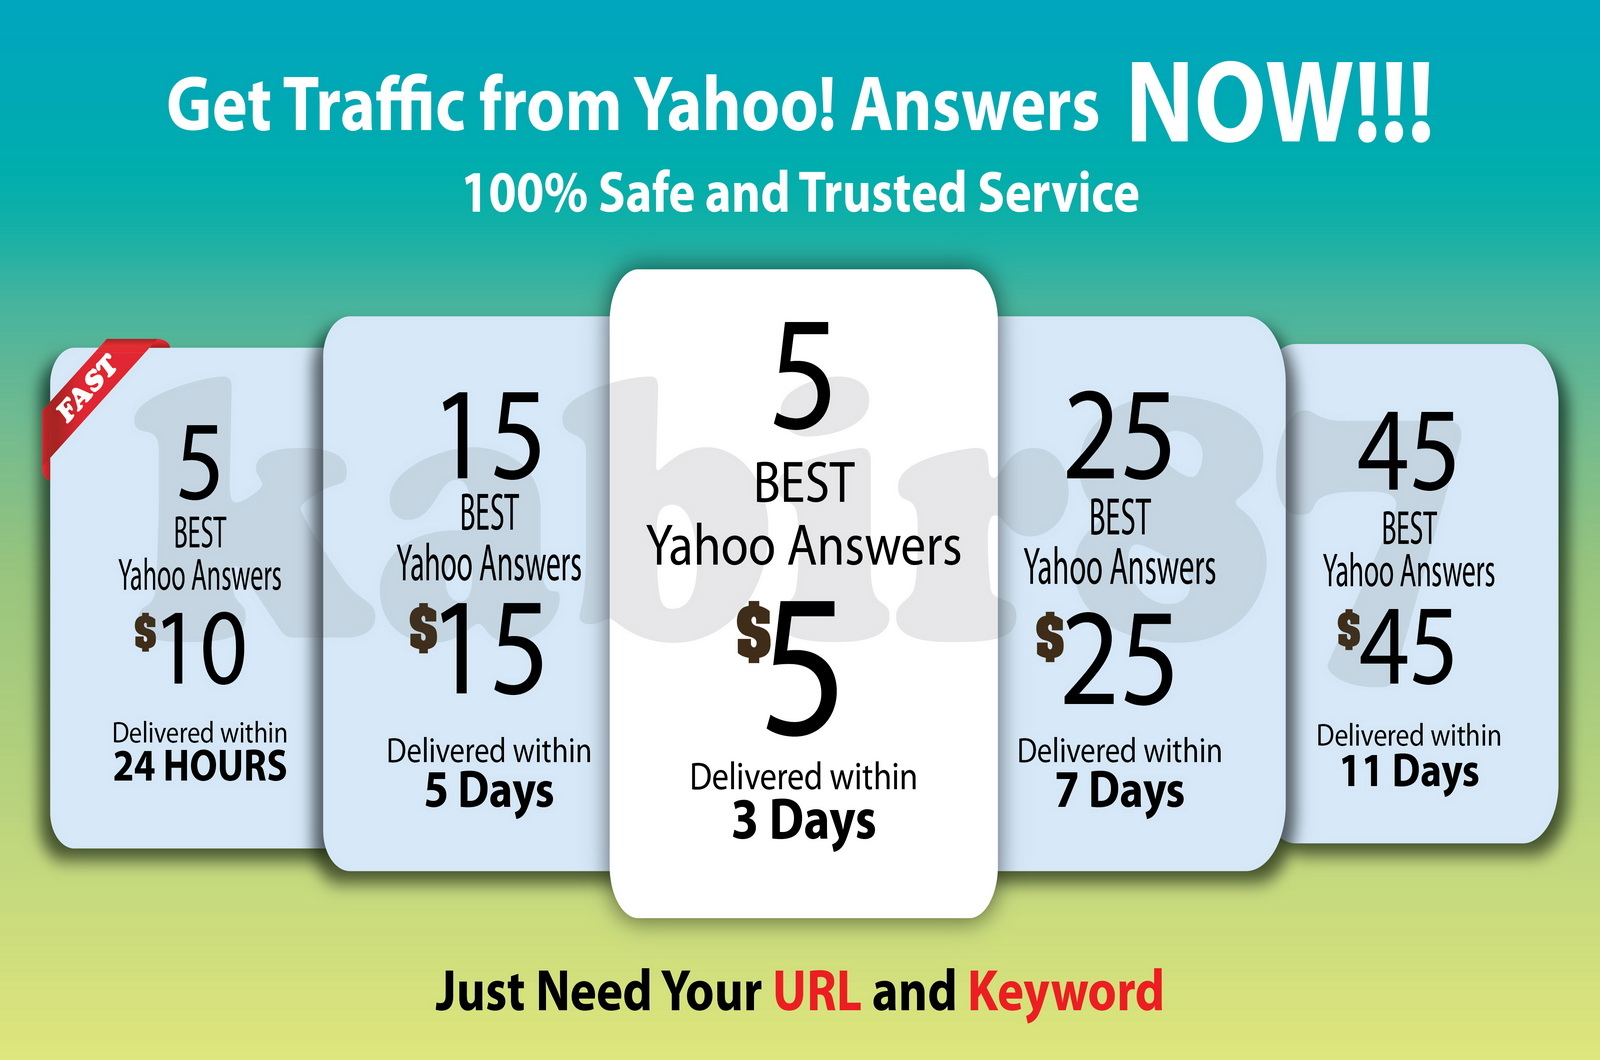 I will do 5 Best Yahoo Answers with your link from different level 2 accounts